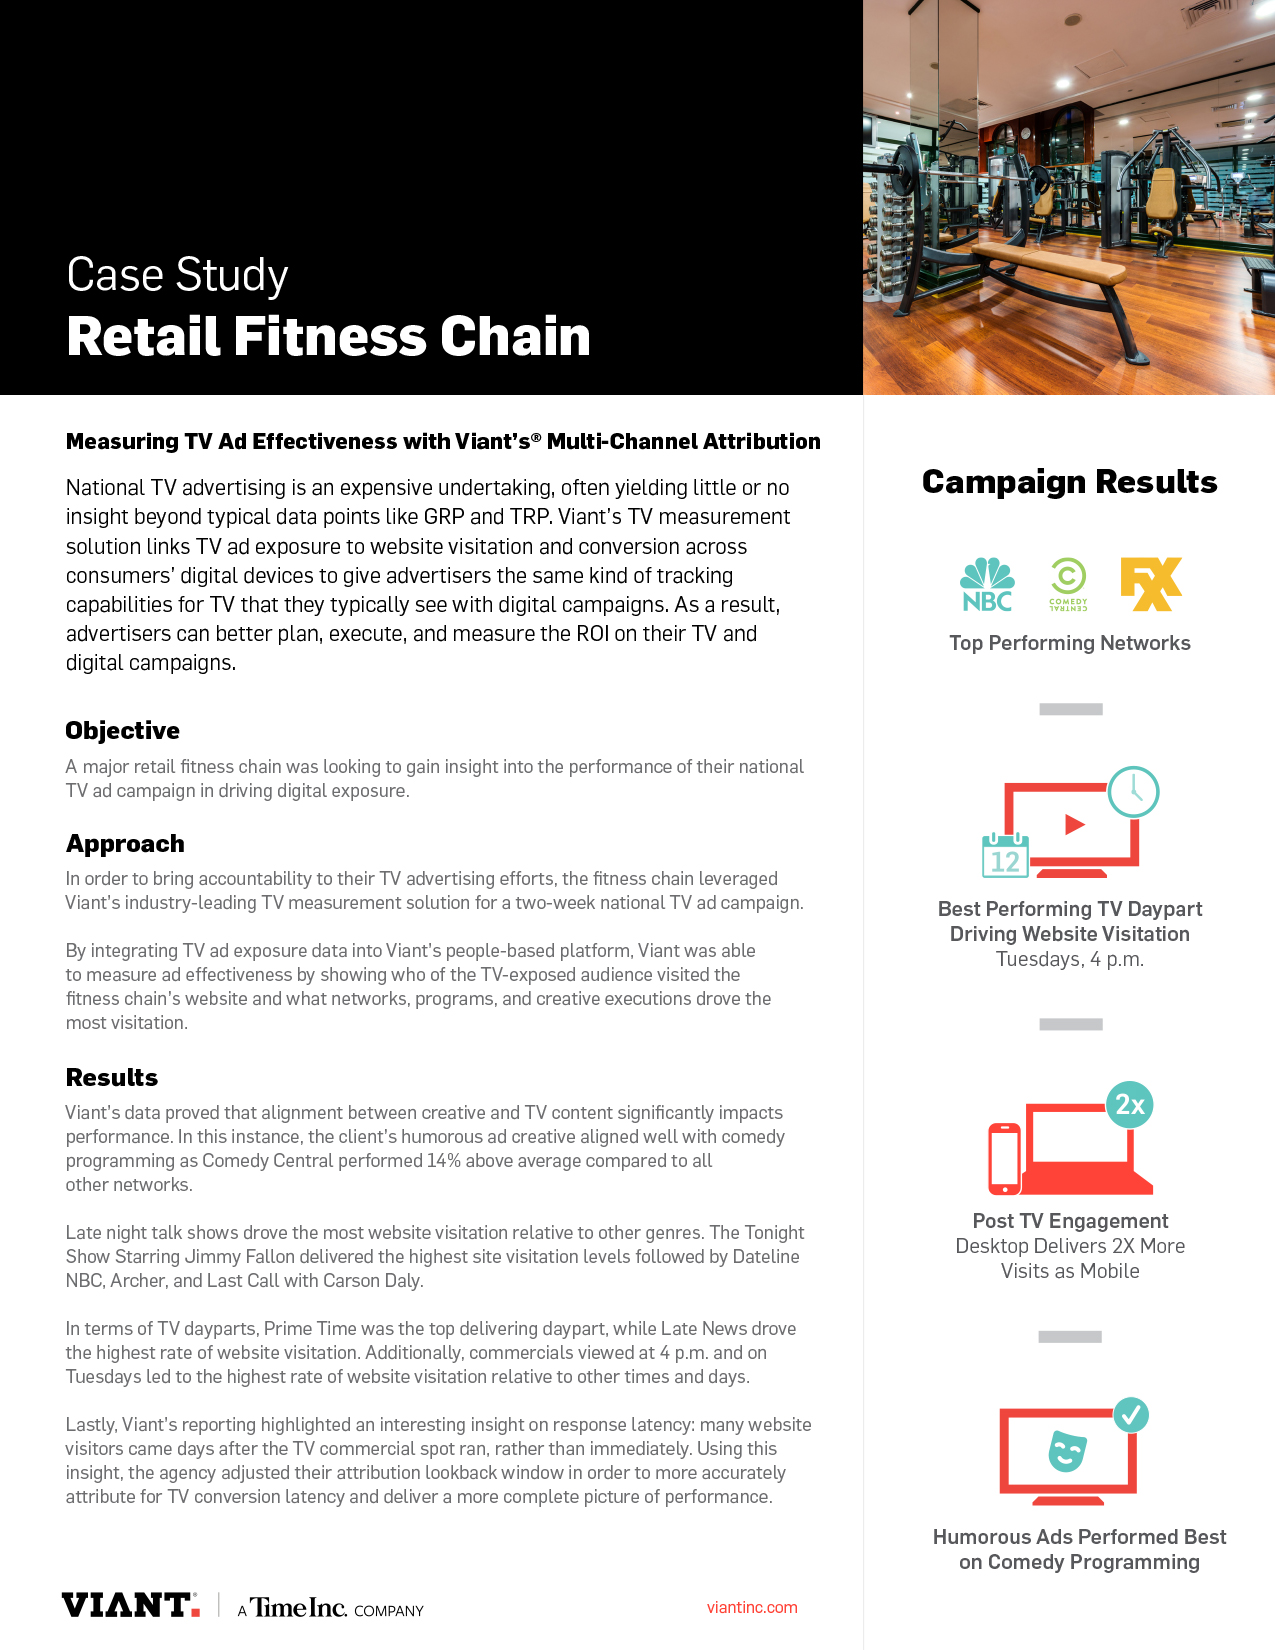 Case Study: Retail Fitness Chain